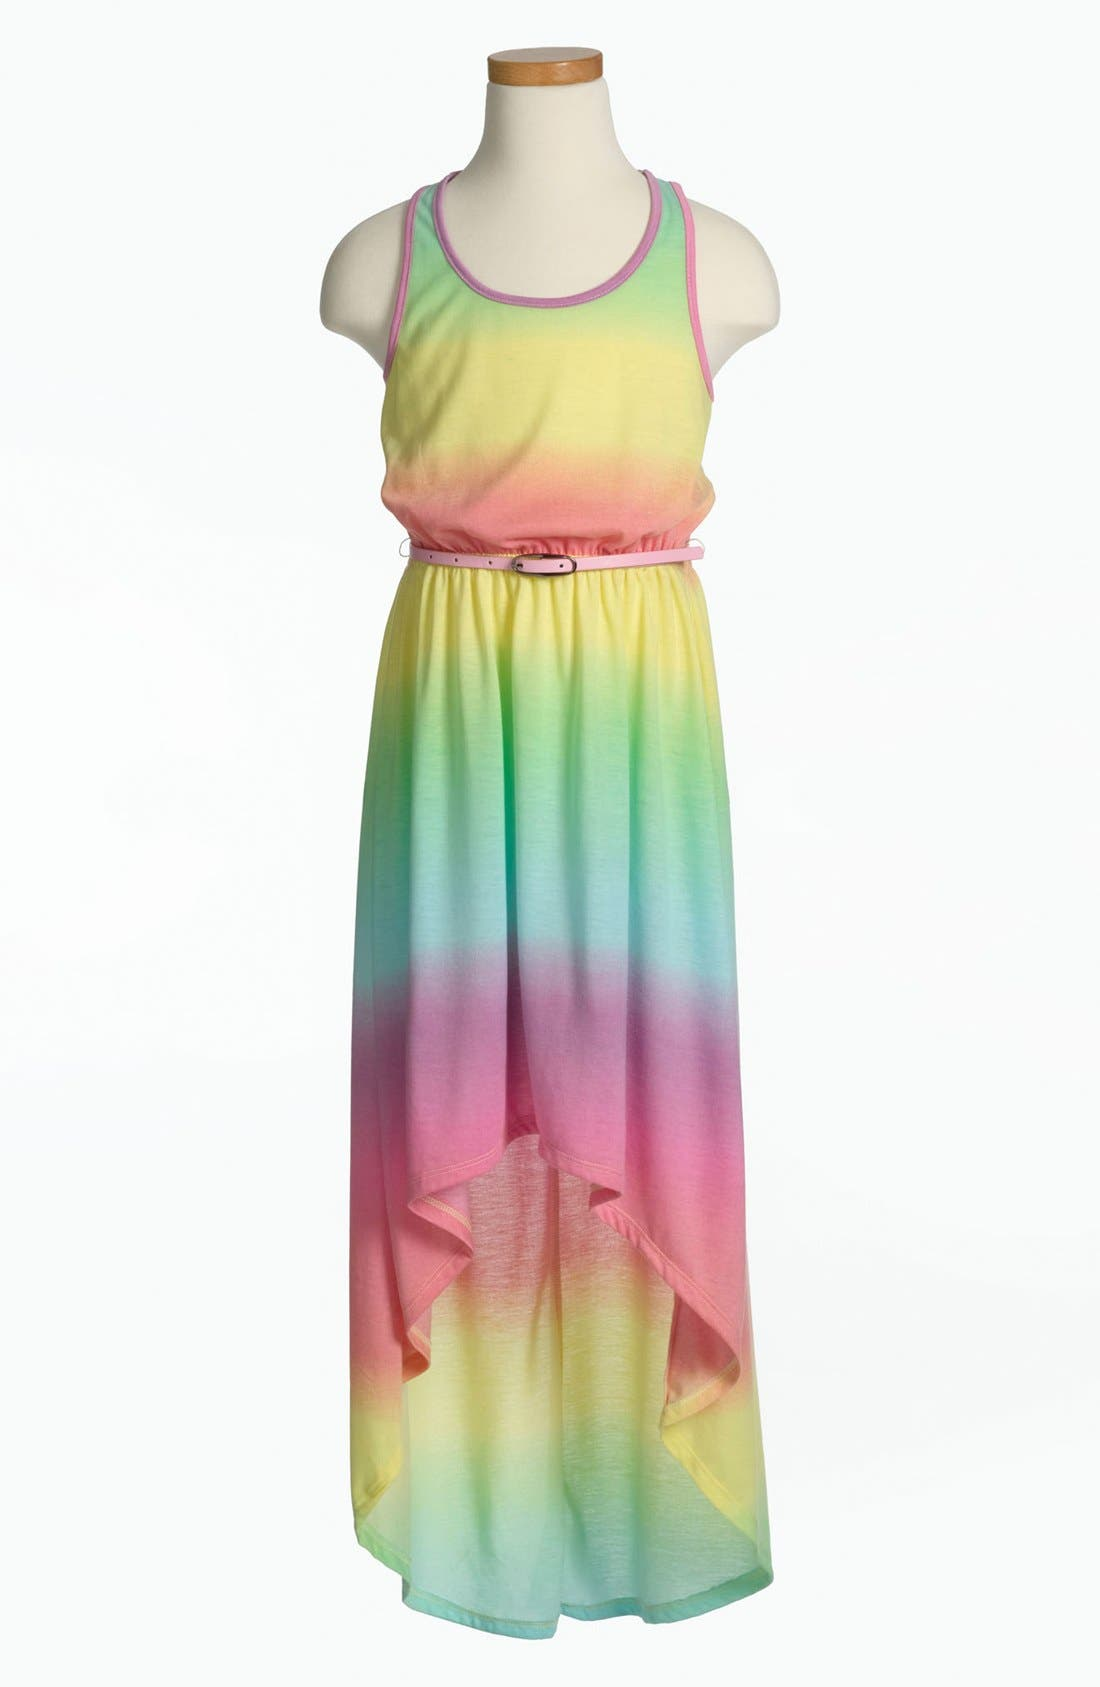 Main Image - Fire Tie Dye Dress (Little Girls & Big Girls)